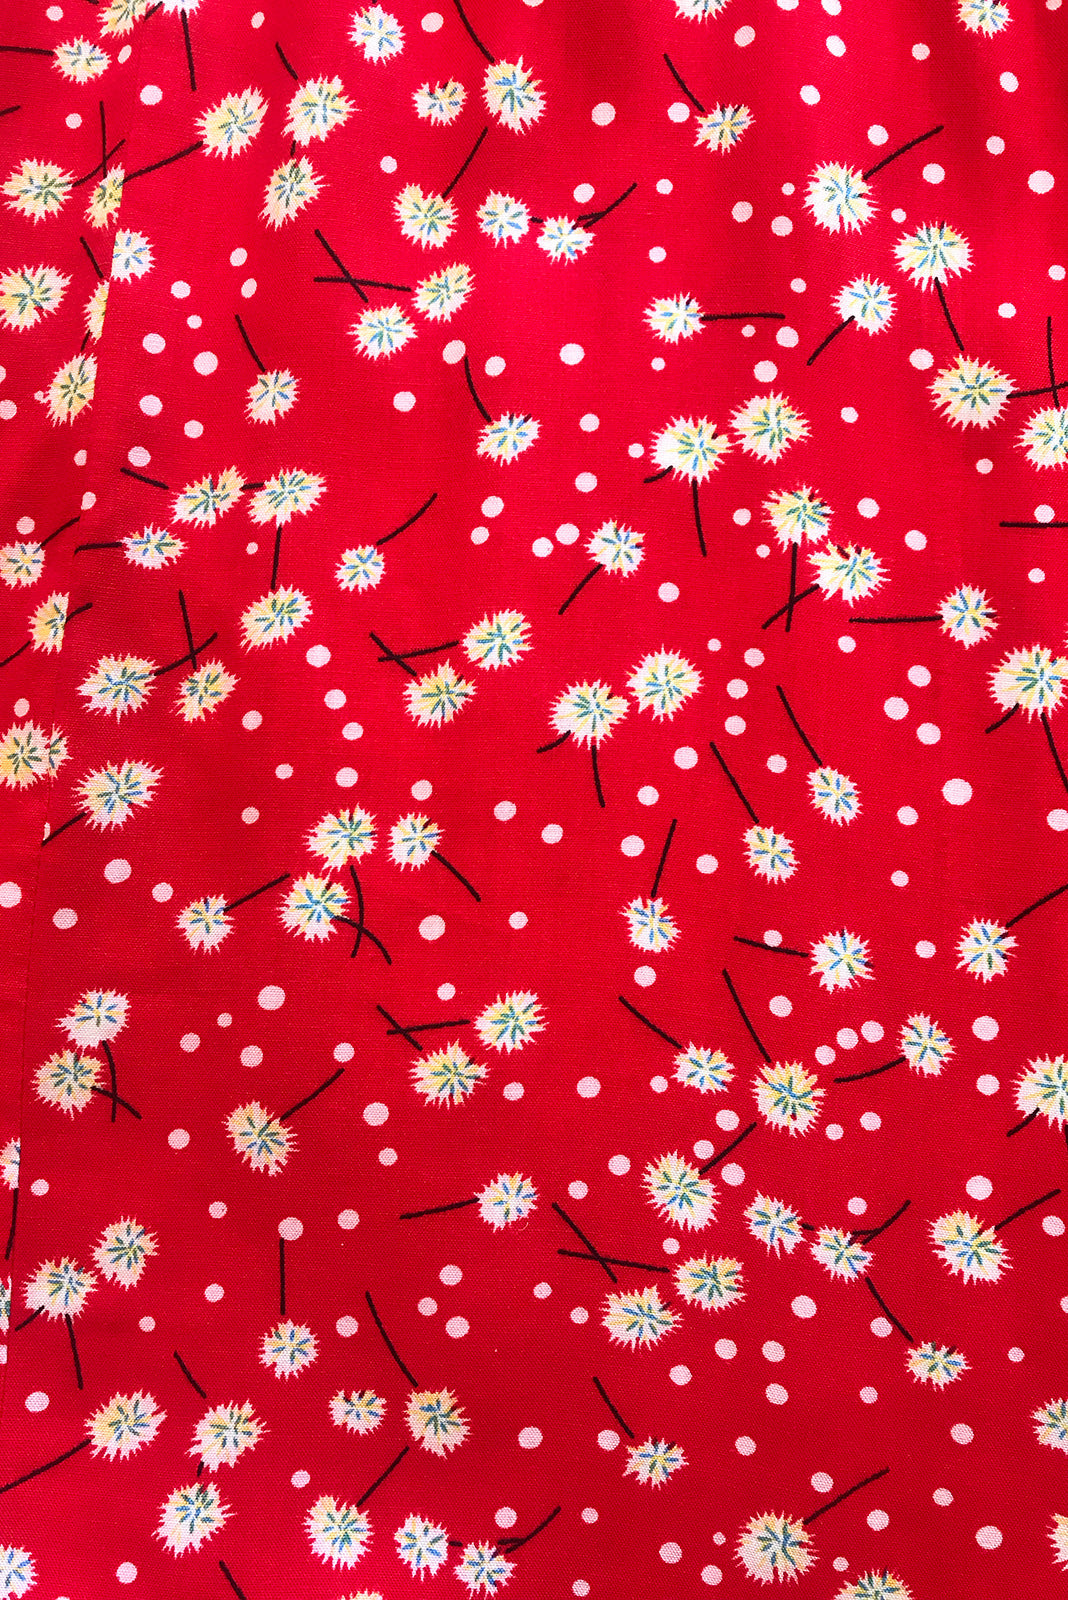 Fabric swatch, 100% woven viscose, bright red base with petite white, forest green and black dandelion floral print.